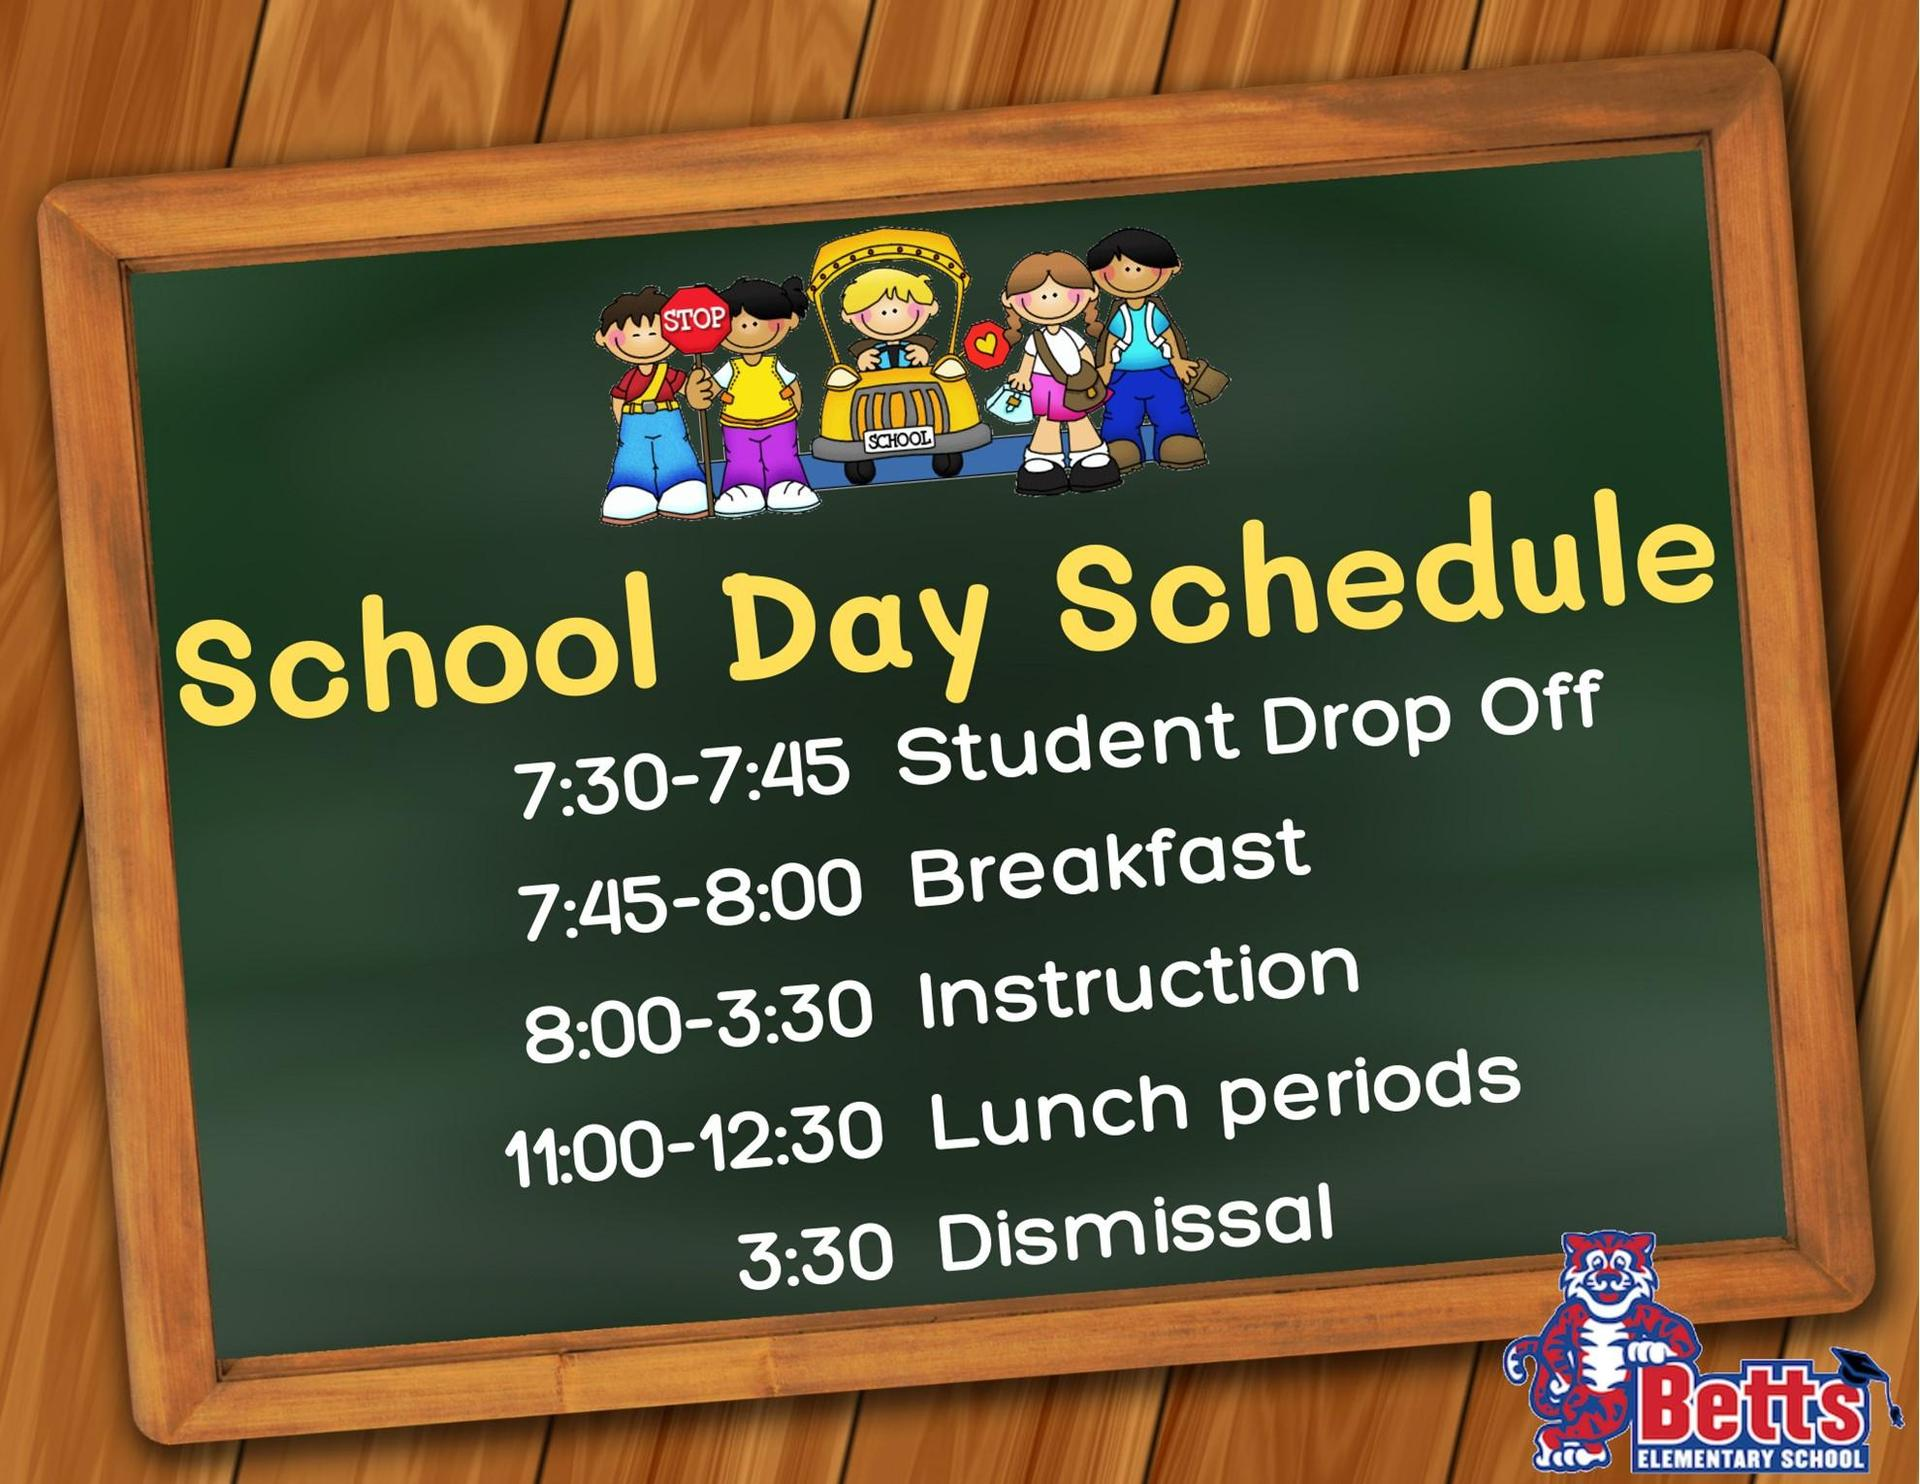 Image of School Day poster